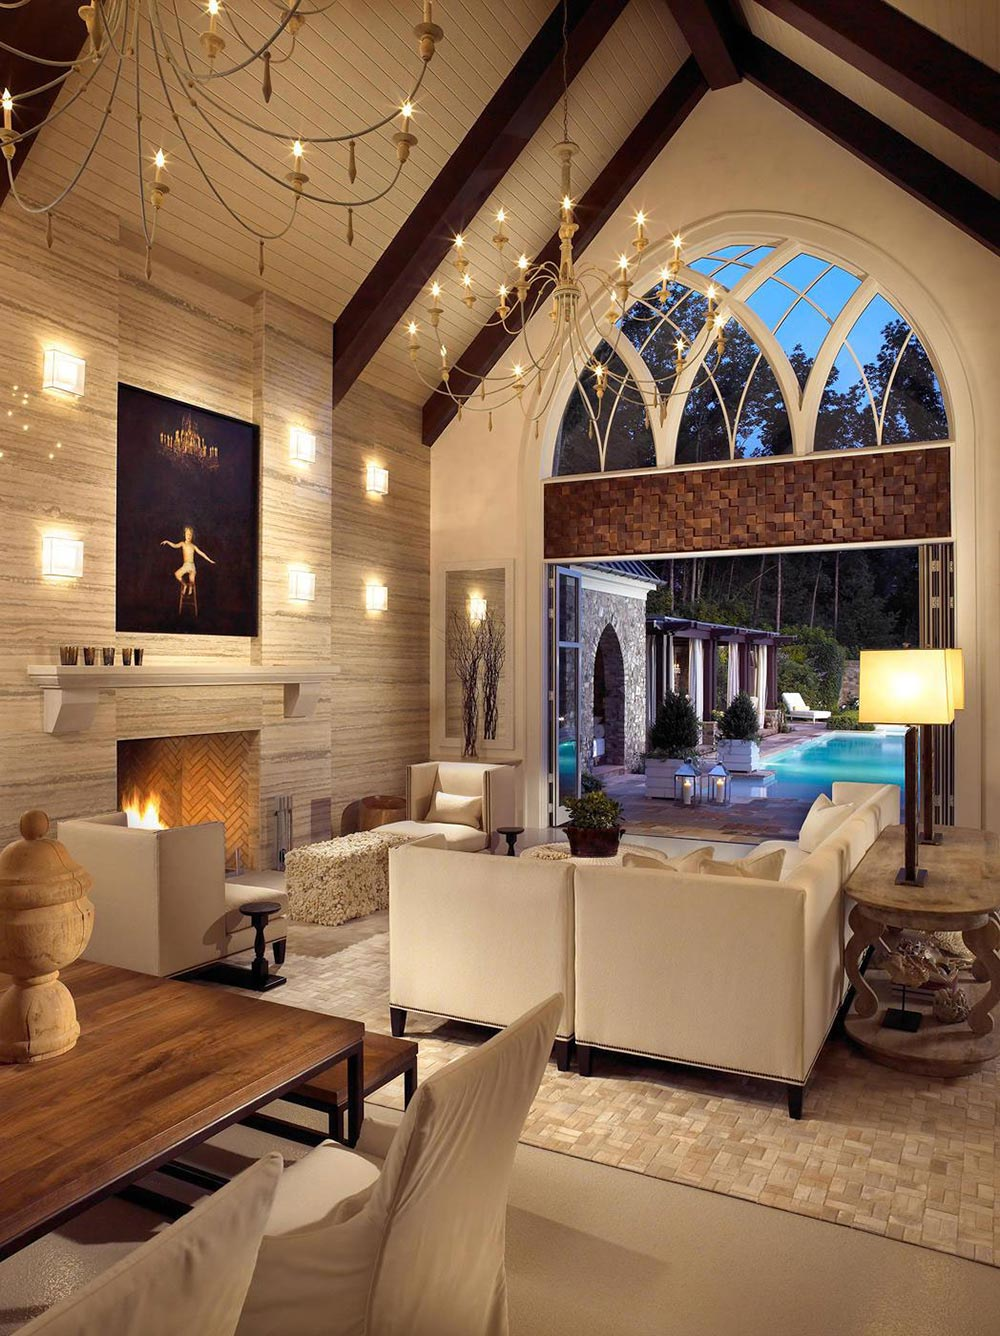 Pool House & Wine Cellar In Nashville Tennessee By Beckwith Interiors